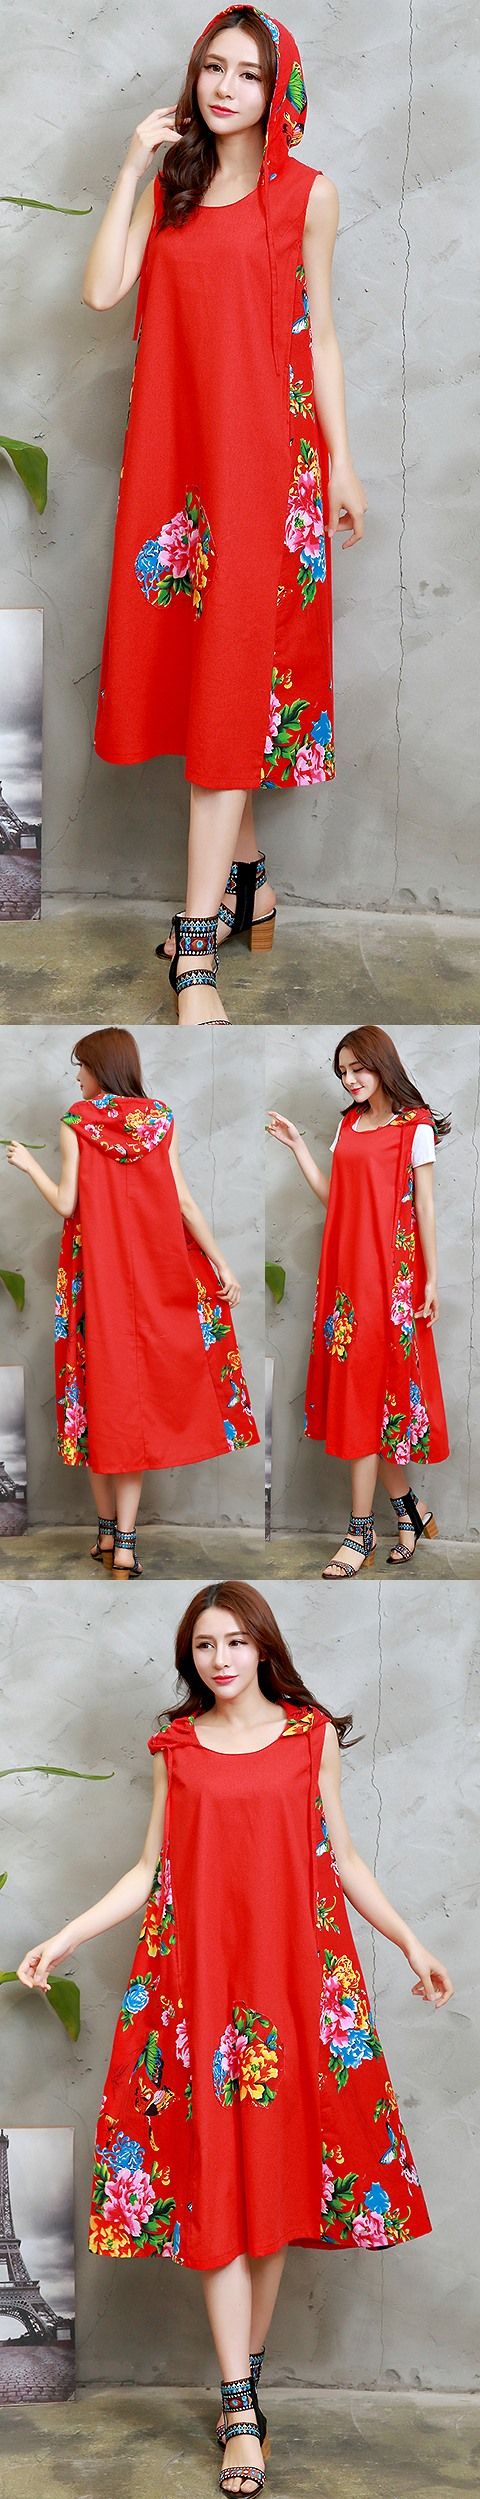 Ethnic Hooded-dress with patches-Red (RM)